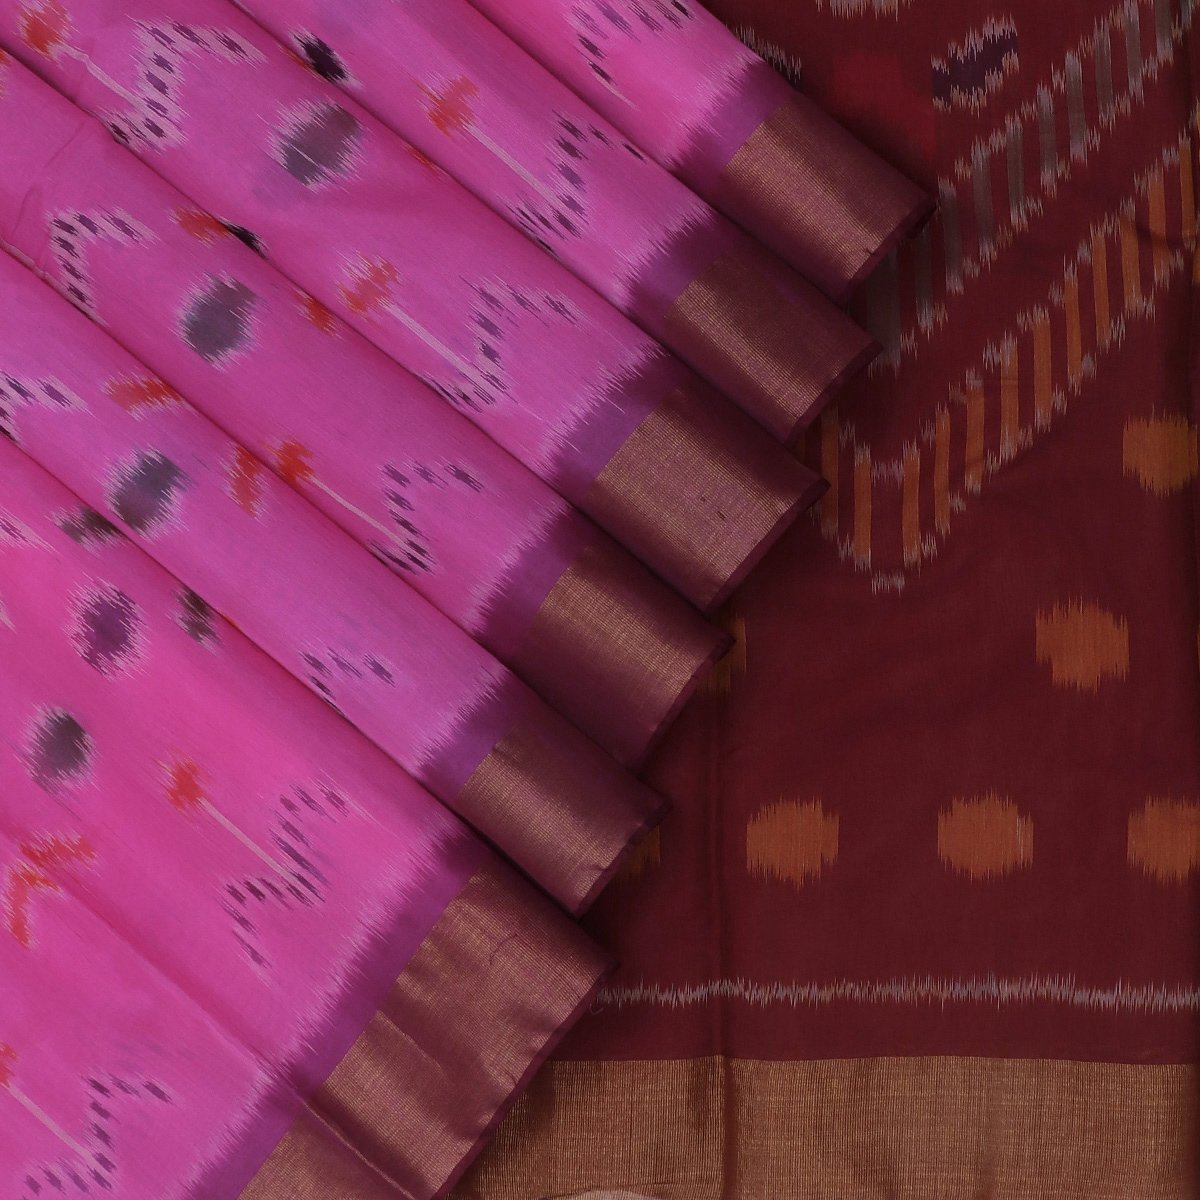 Kora silk Cotton saree Pink and Maroon with Ikkat prints and Zari Border